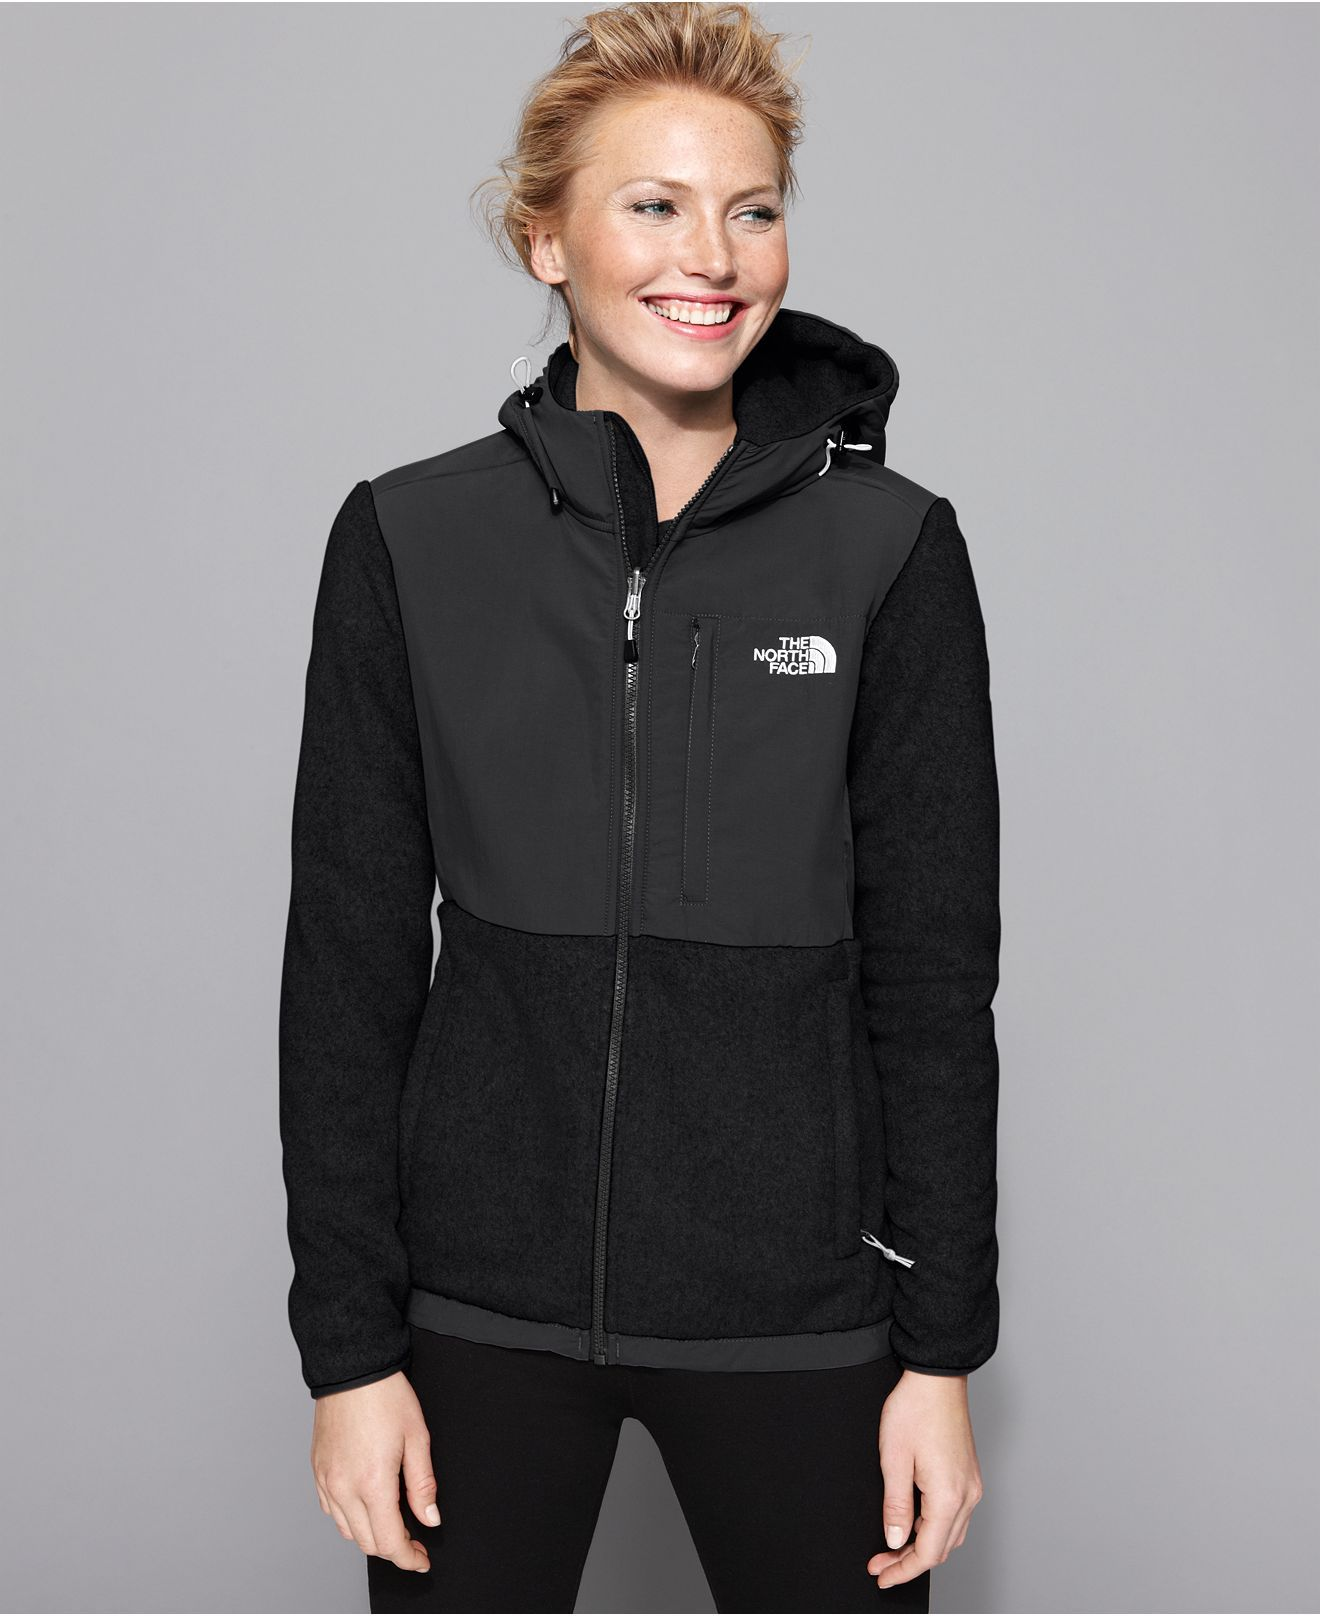 This Jacket Will Never Be Out Of Style Goes With Anything Keeps You Warm And Looks Cute North Face Jacket Blazer Jackets For Women Uncomfortable Clothes [ 1616 x 1320 Pixel ]